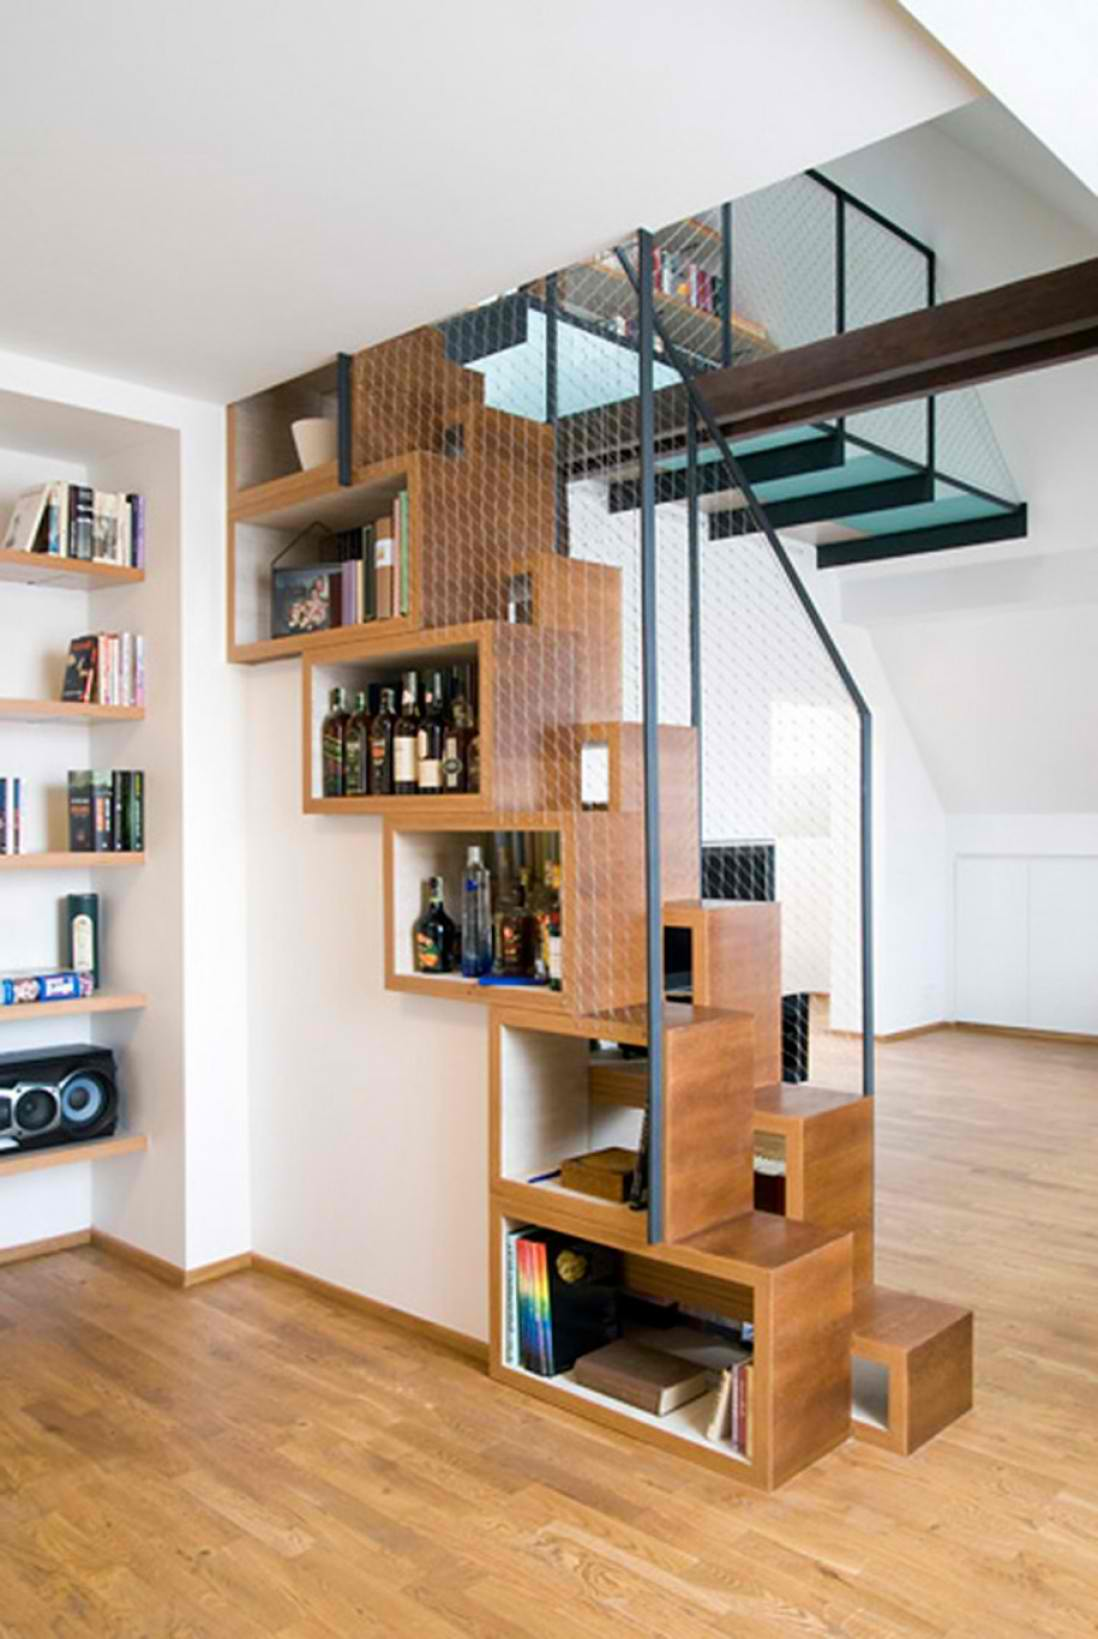 7 Smart Design Solutions For Small Spaces – Gawin